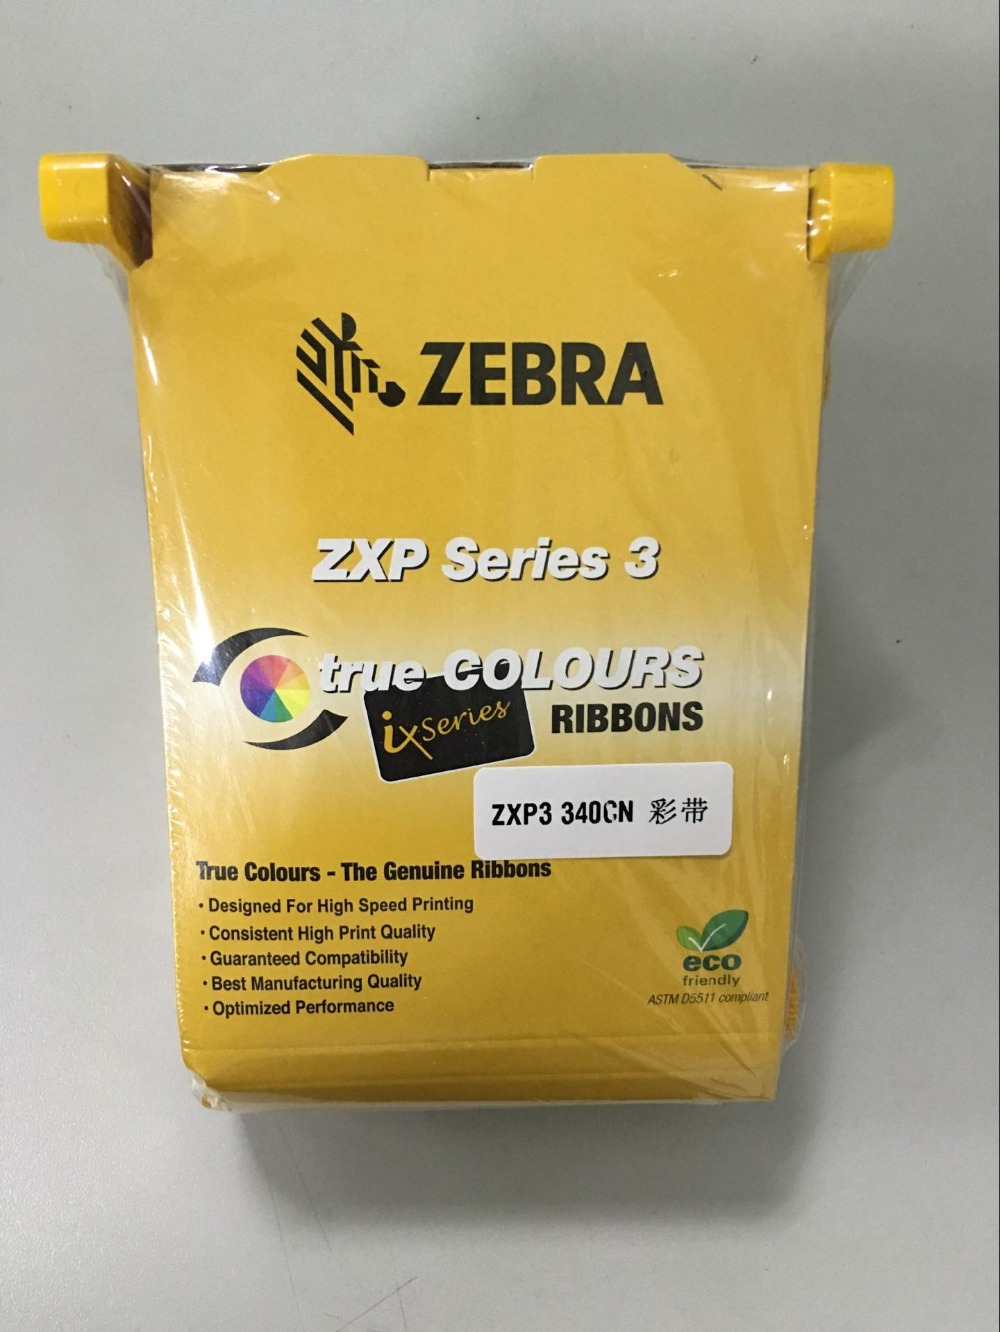 original color printer ribbon, id card color ribbon used with Zebra ZXP Series 3 printer part no.:800033-340cn idp smart 650664 siadc p r red ribbon use for smart id card printer ribbon